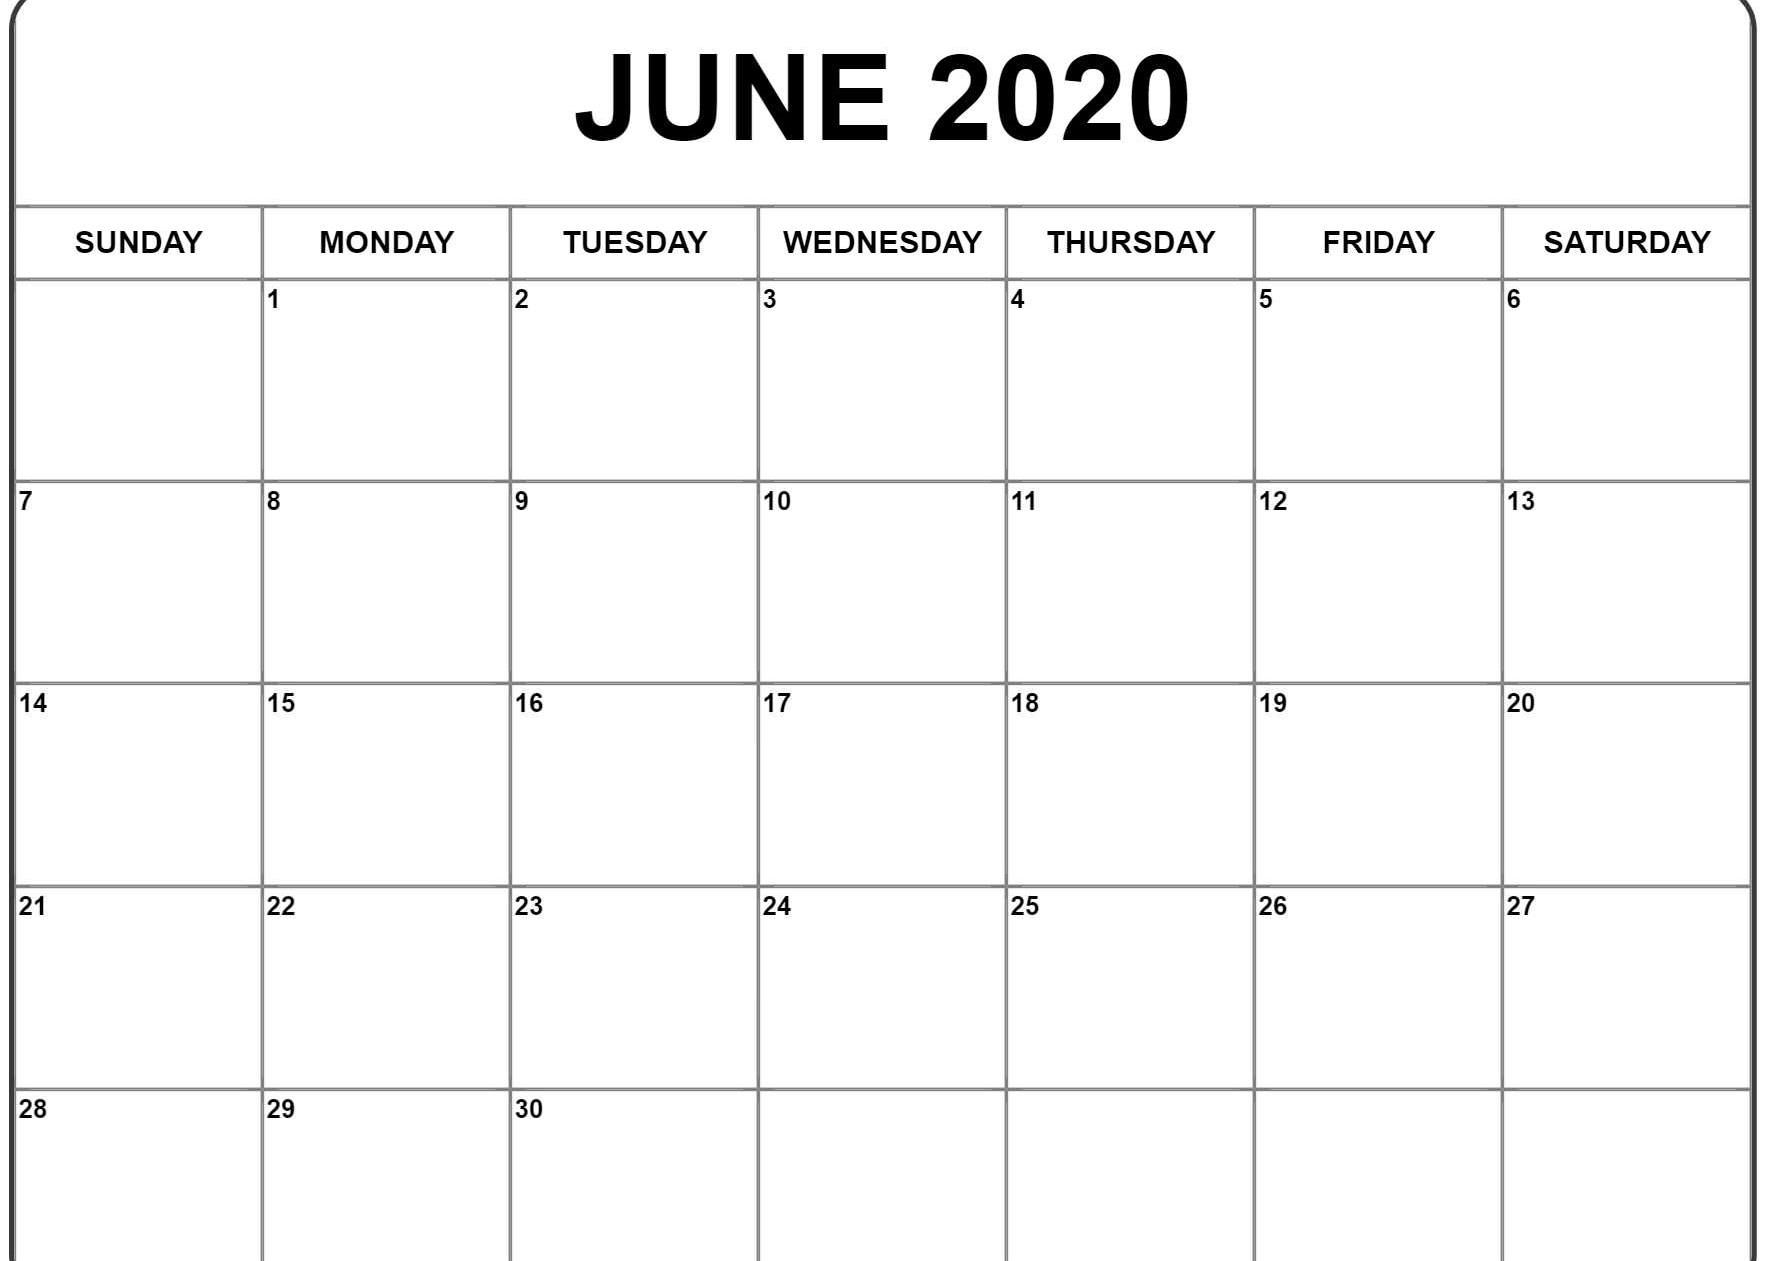 005 Top Calendar Template 2020 Word Picture  April Monthly Microsoft With Holiday FebruaryFull